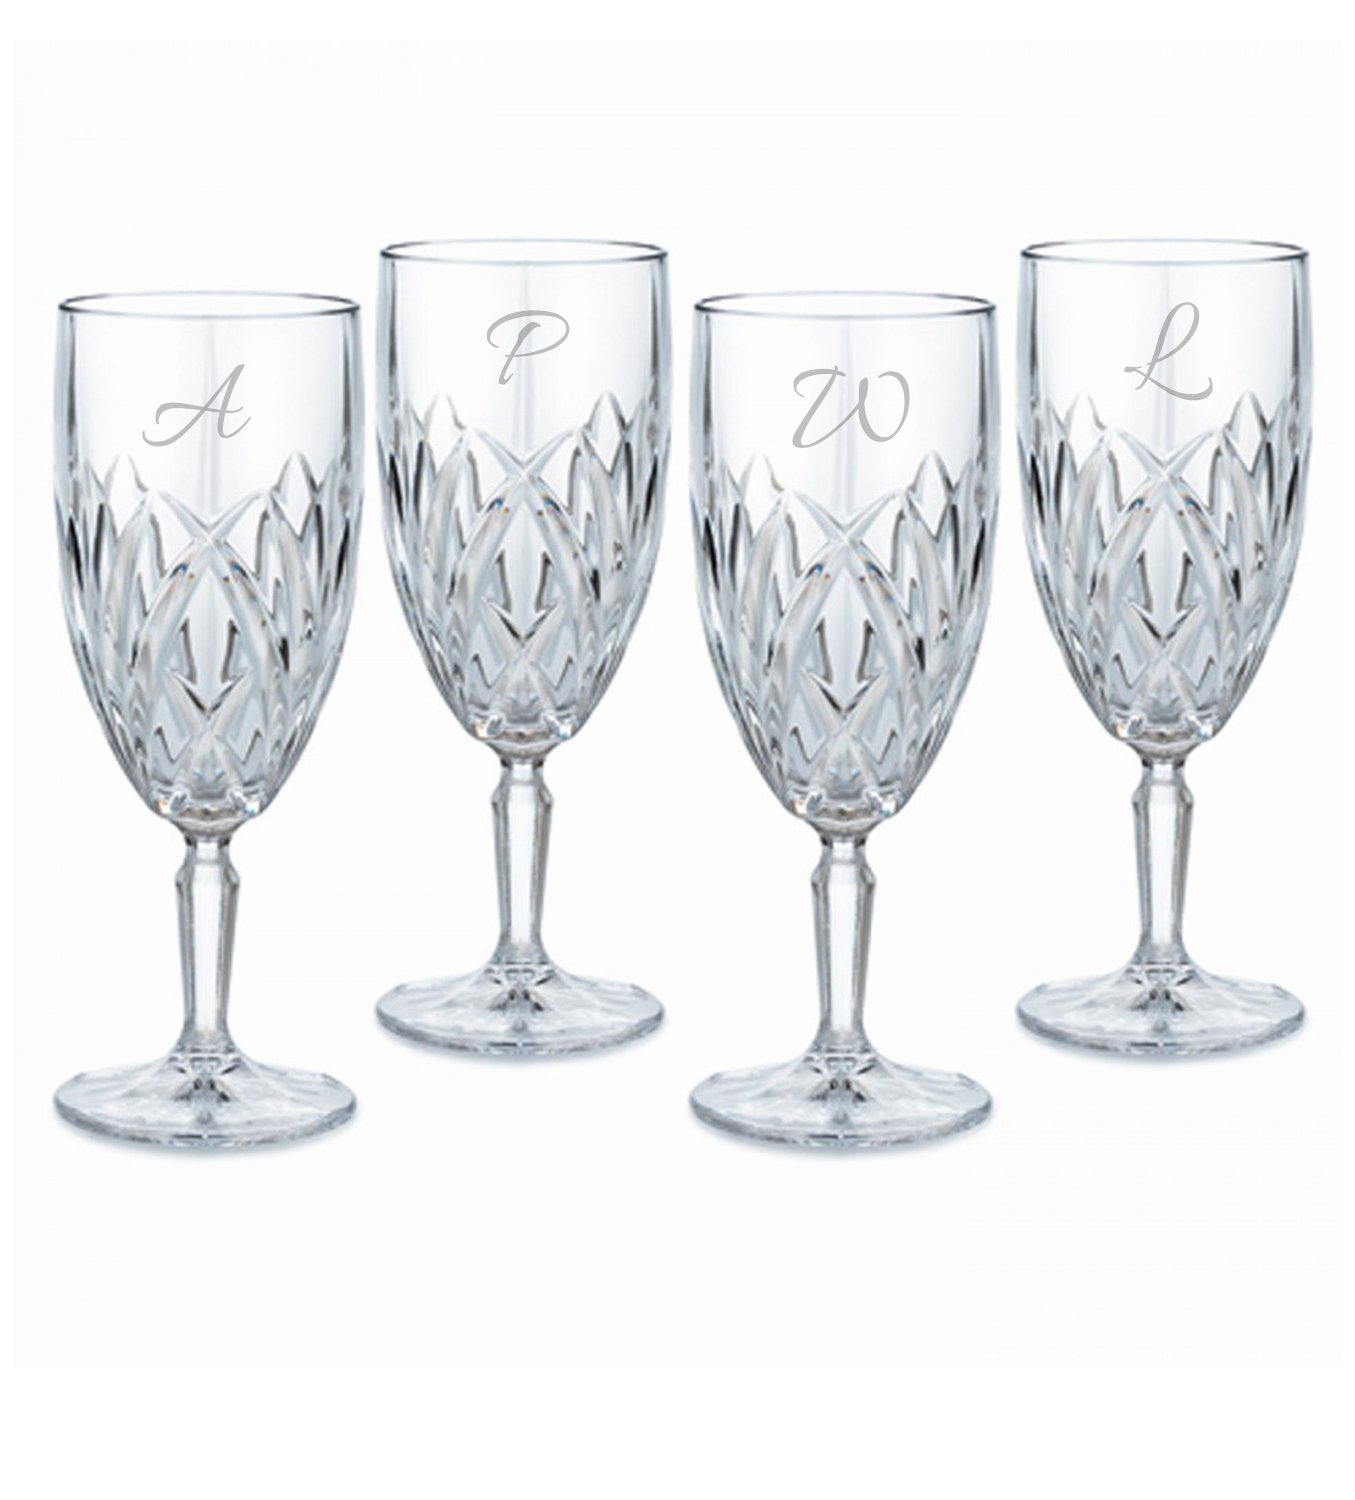 Waterford Marquis Brookside Footed Goblets Set of 4, Personalized Wine Glasses, Custom Engraved Goblets